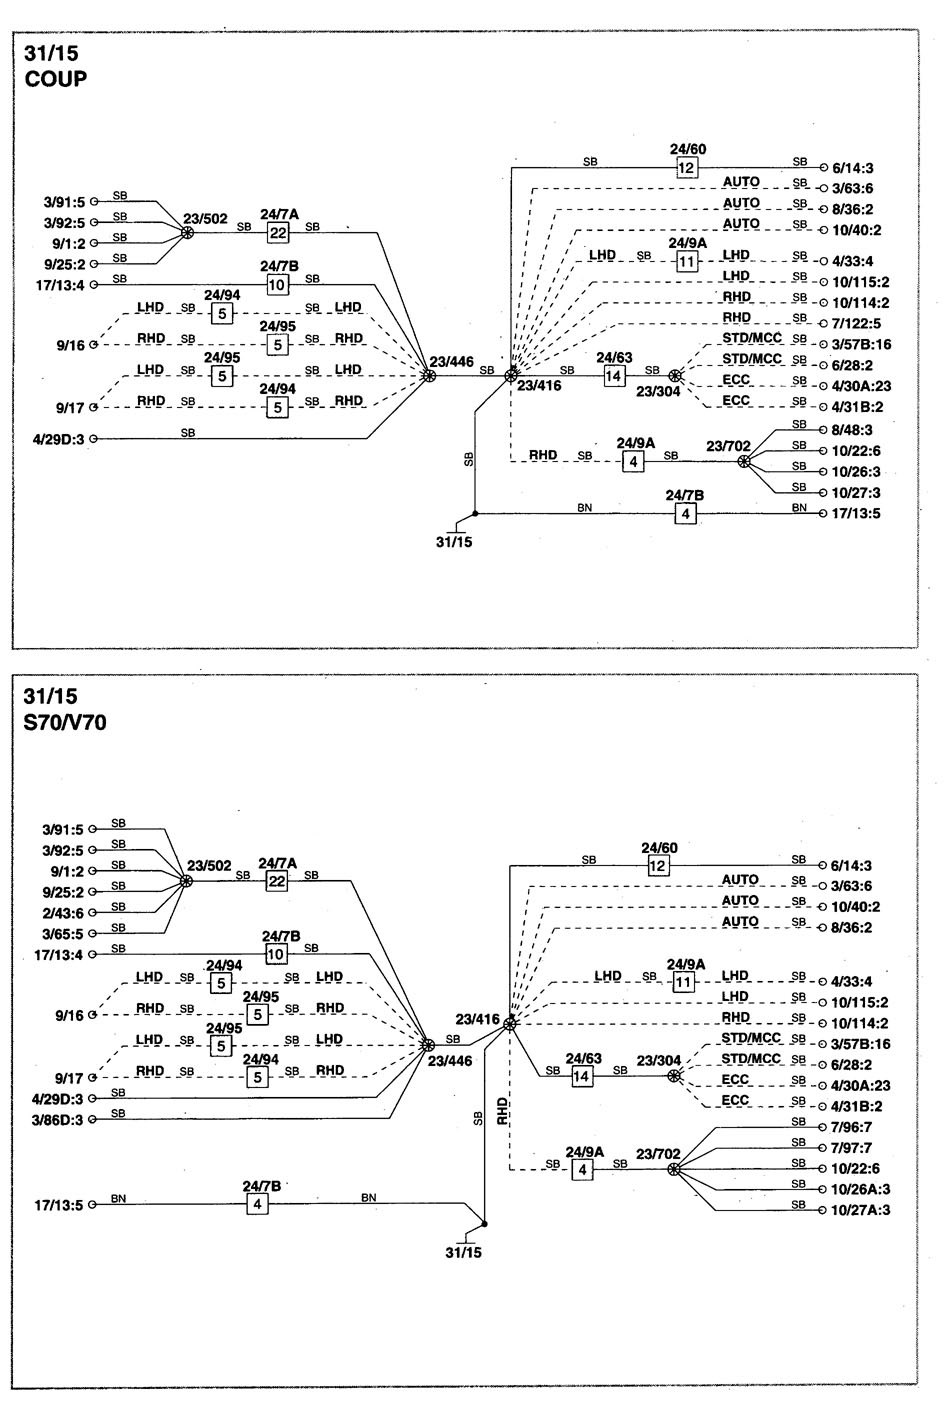 1985 chevy c70 wiring diagram trusted wiring diagram mazdaspeed 3 wiring diagram sl350 wiring diagram enthusiast wiring diagrams \\u2022 chevy cavalier wiring diagram 1985 chevy c70 wiring diagram